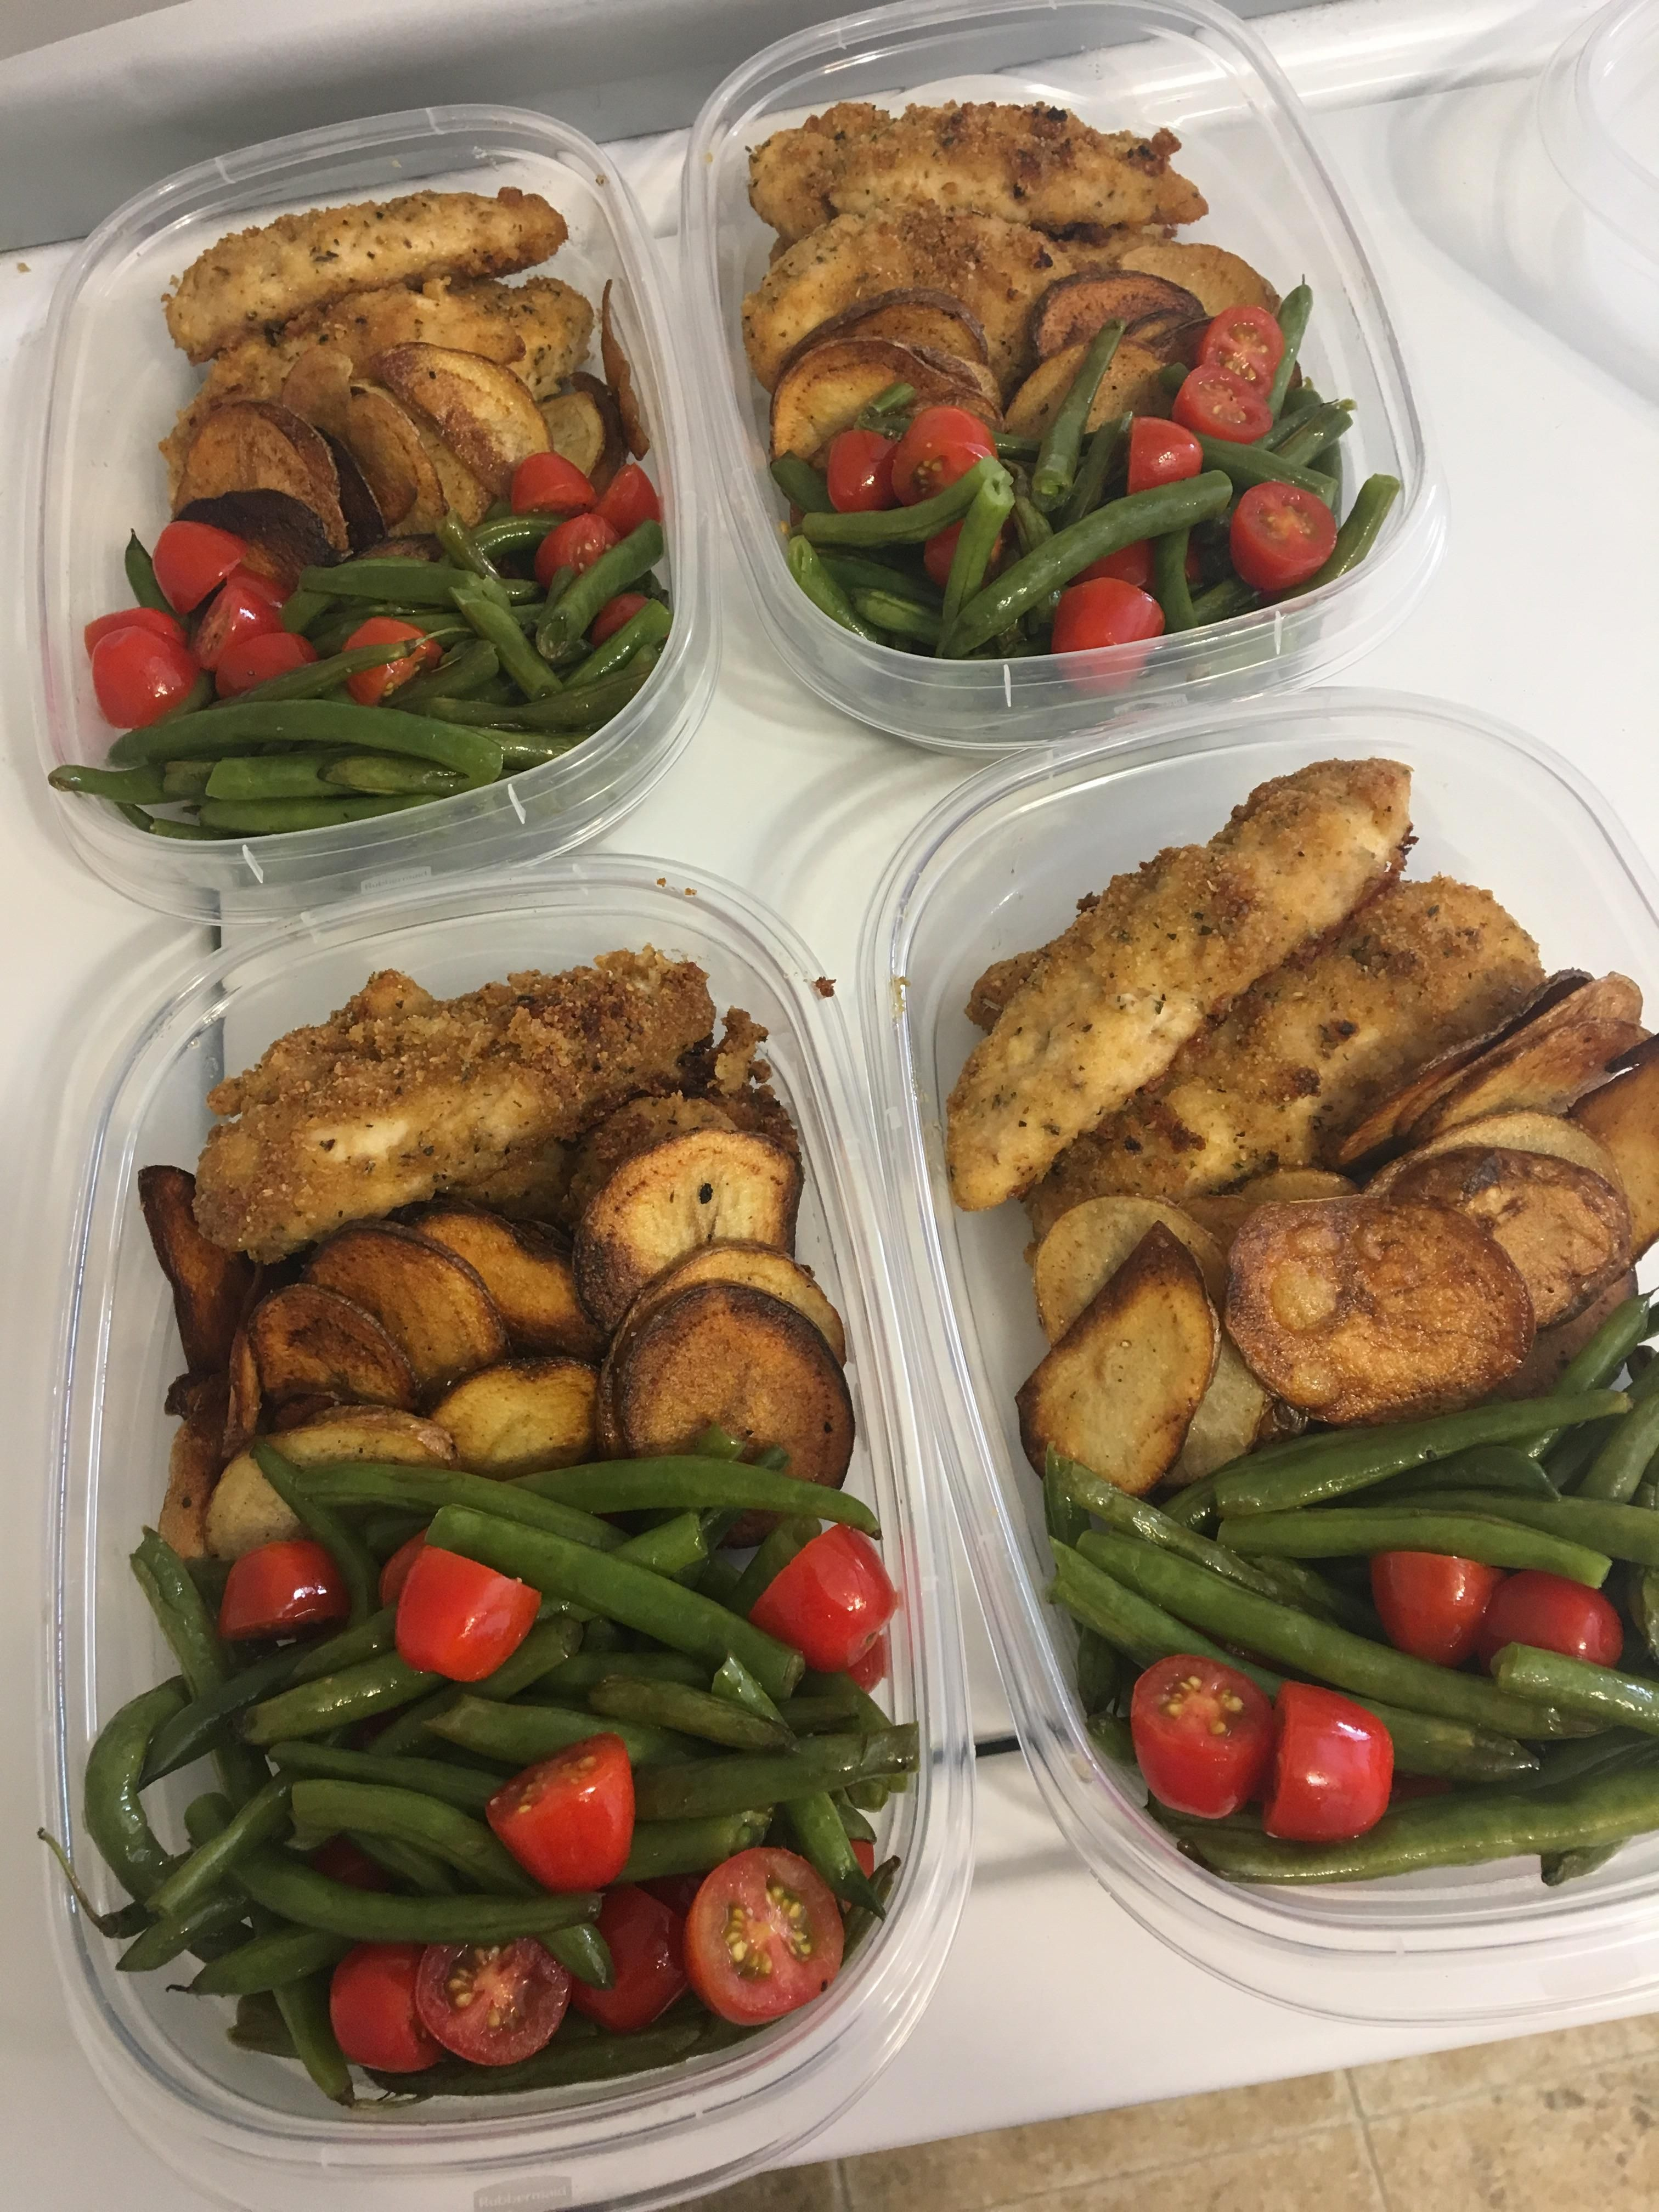 New to this whole sub first time every trying meal prep so